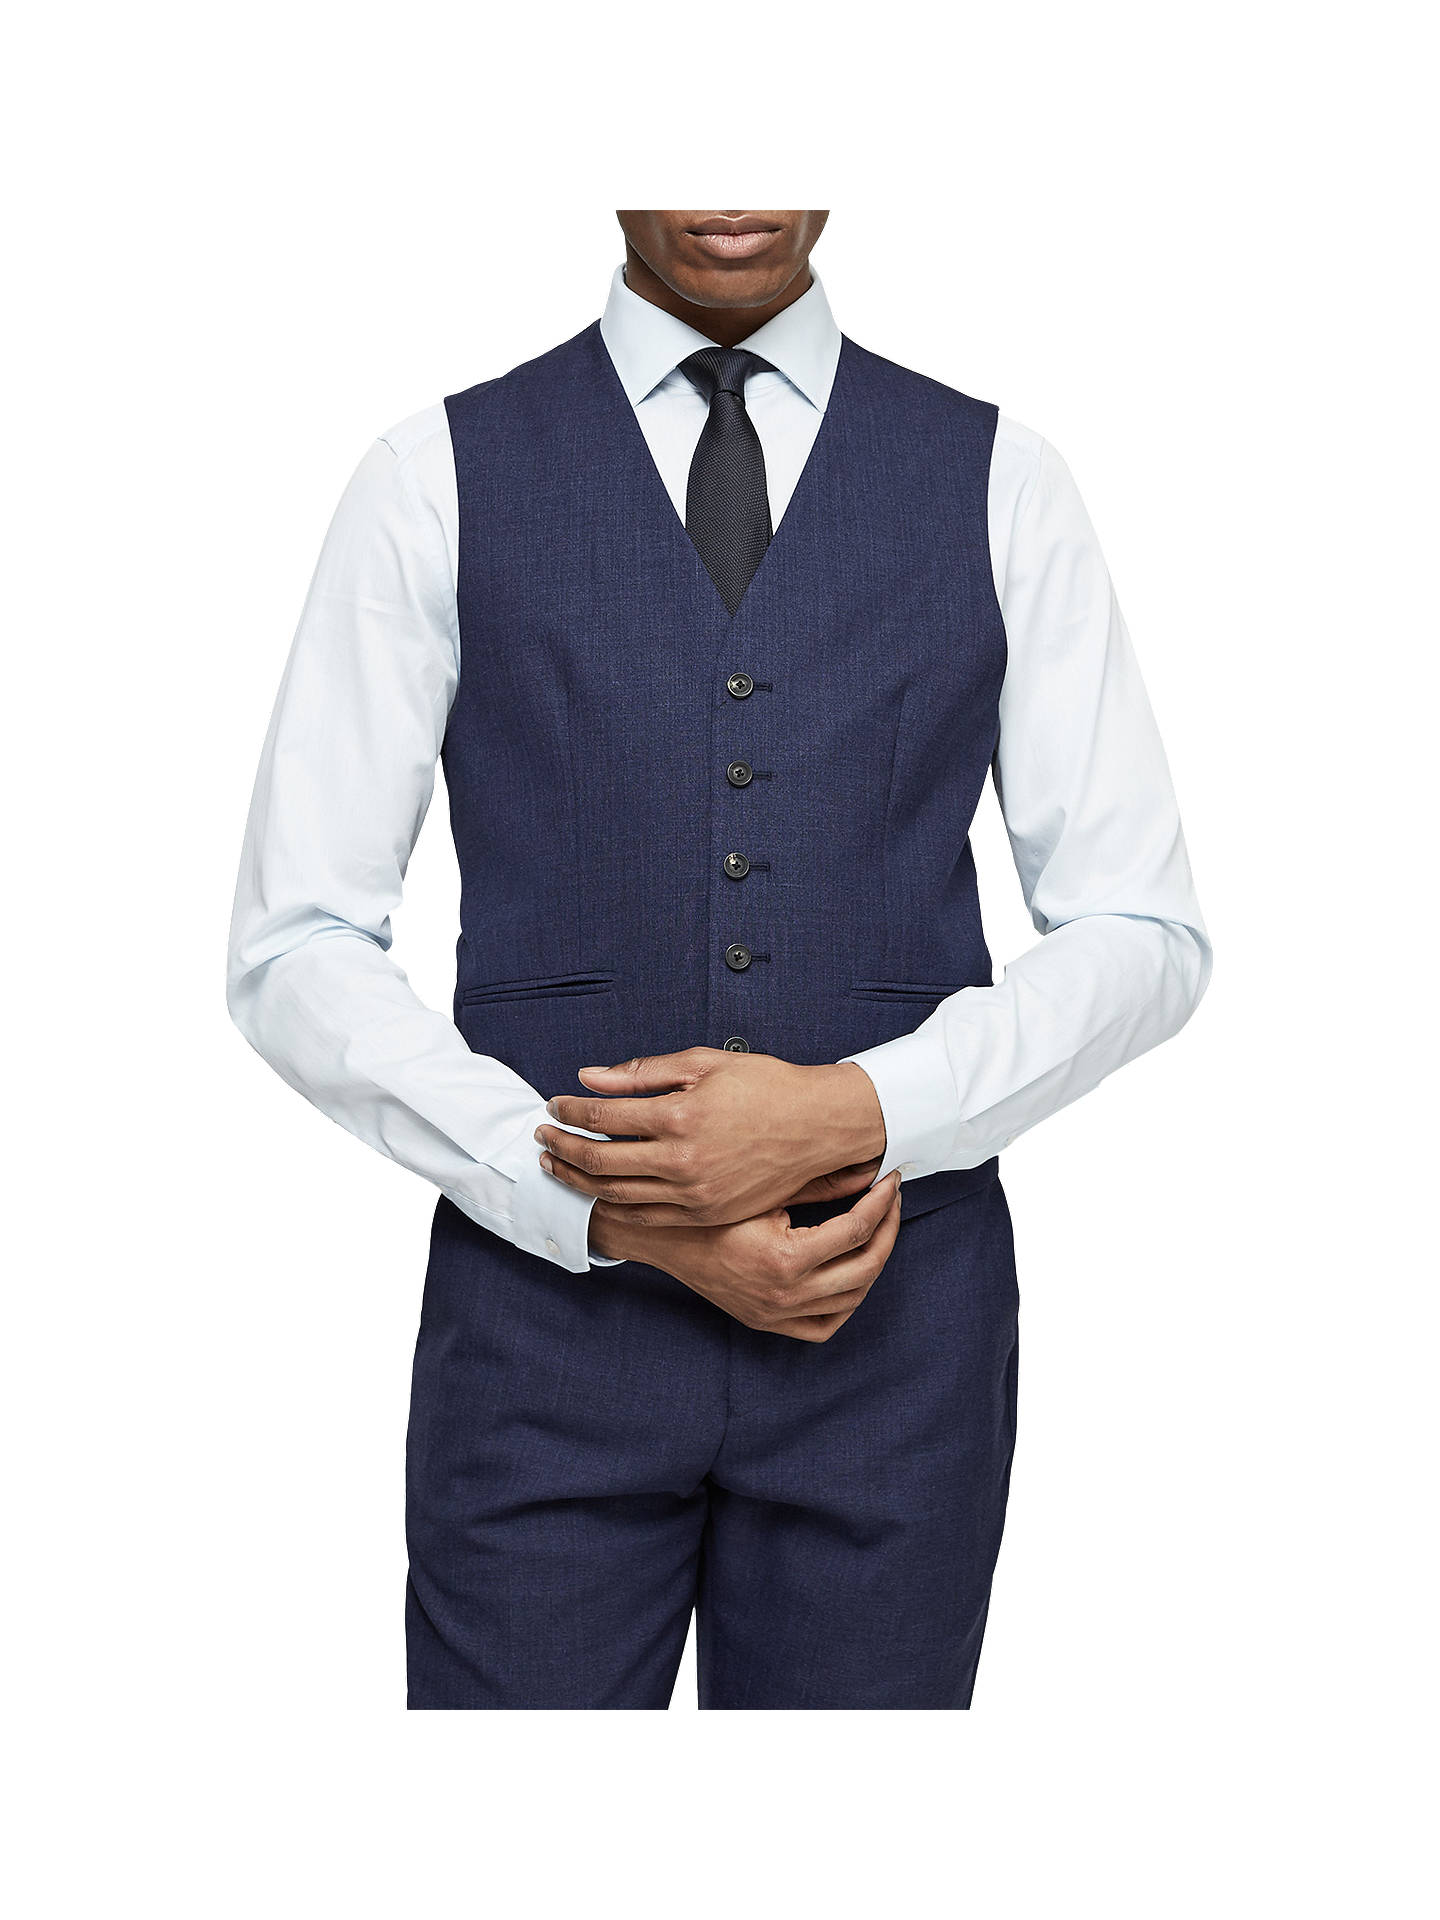 BuyReiss Rover Modern Fit Waistcoat, Bright Blue, 34R Online at johnlewis.com